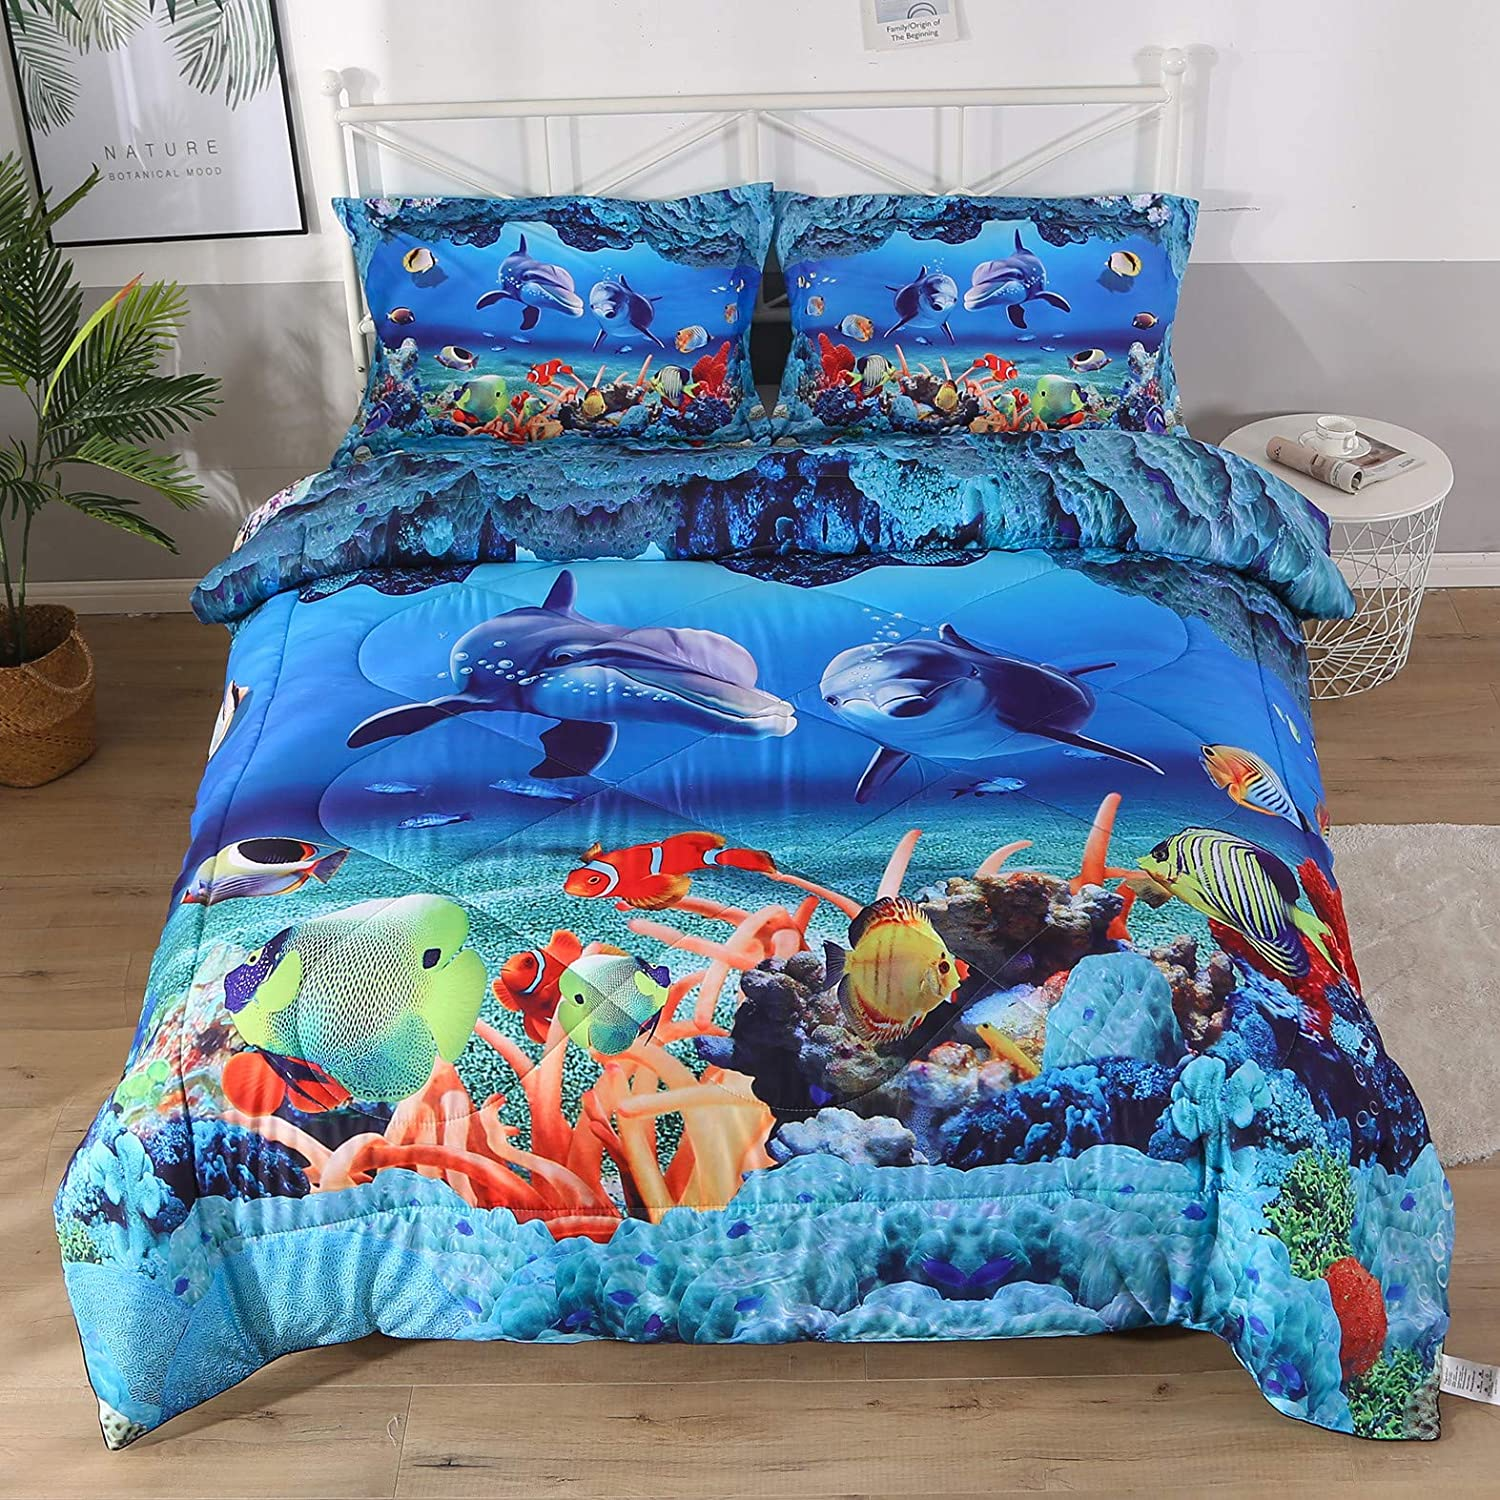 Qucover Blue Ocean Comforter Sets, 3D Dolphin Bedding Sets Toddle Bedding 1 Bed Comforter+2 Pillow Shams for Children Kids Boys Girls Full Size